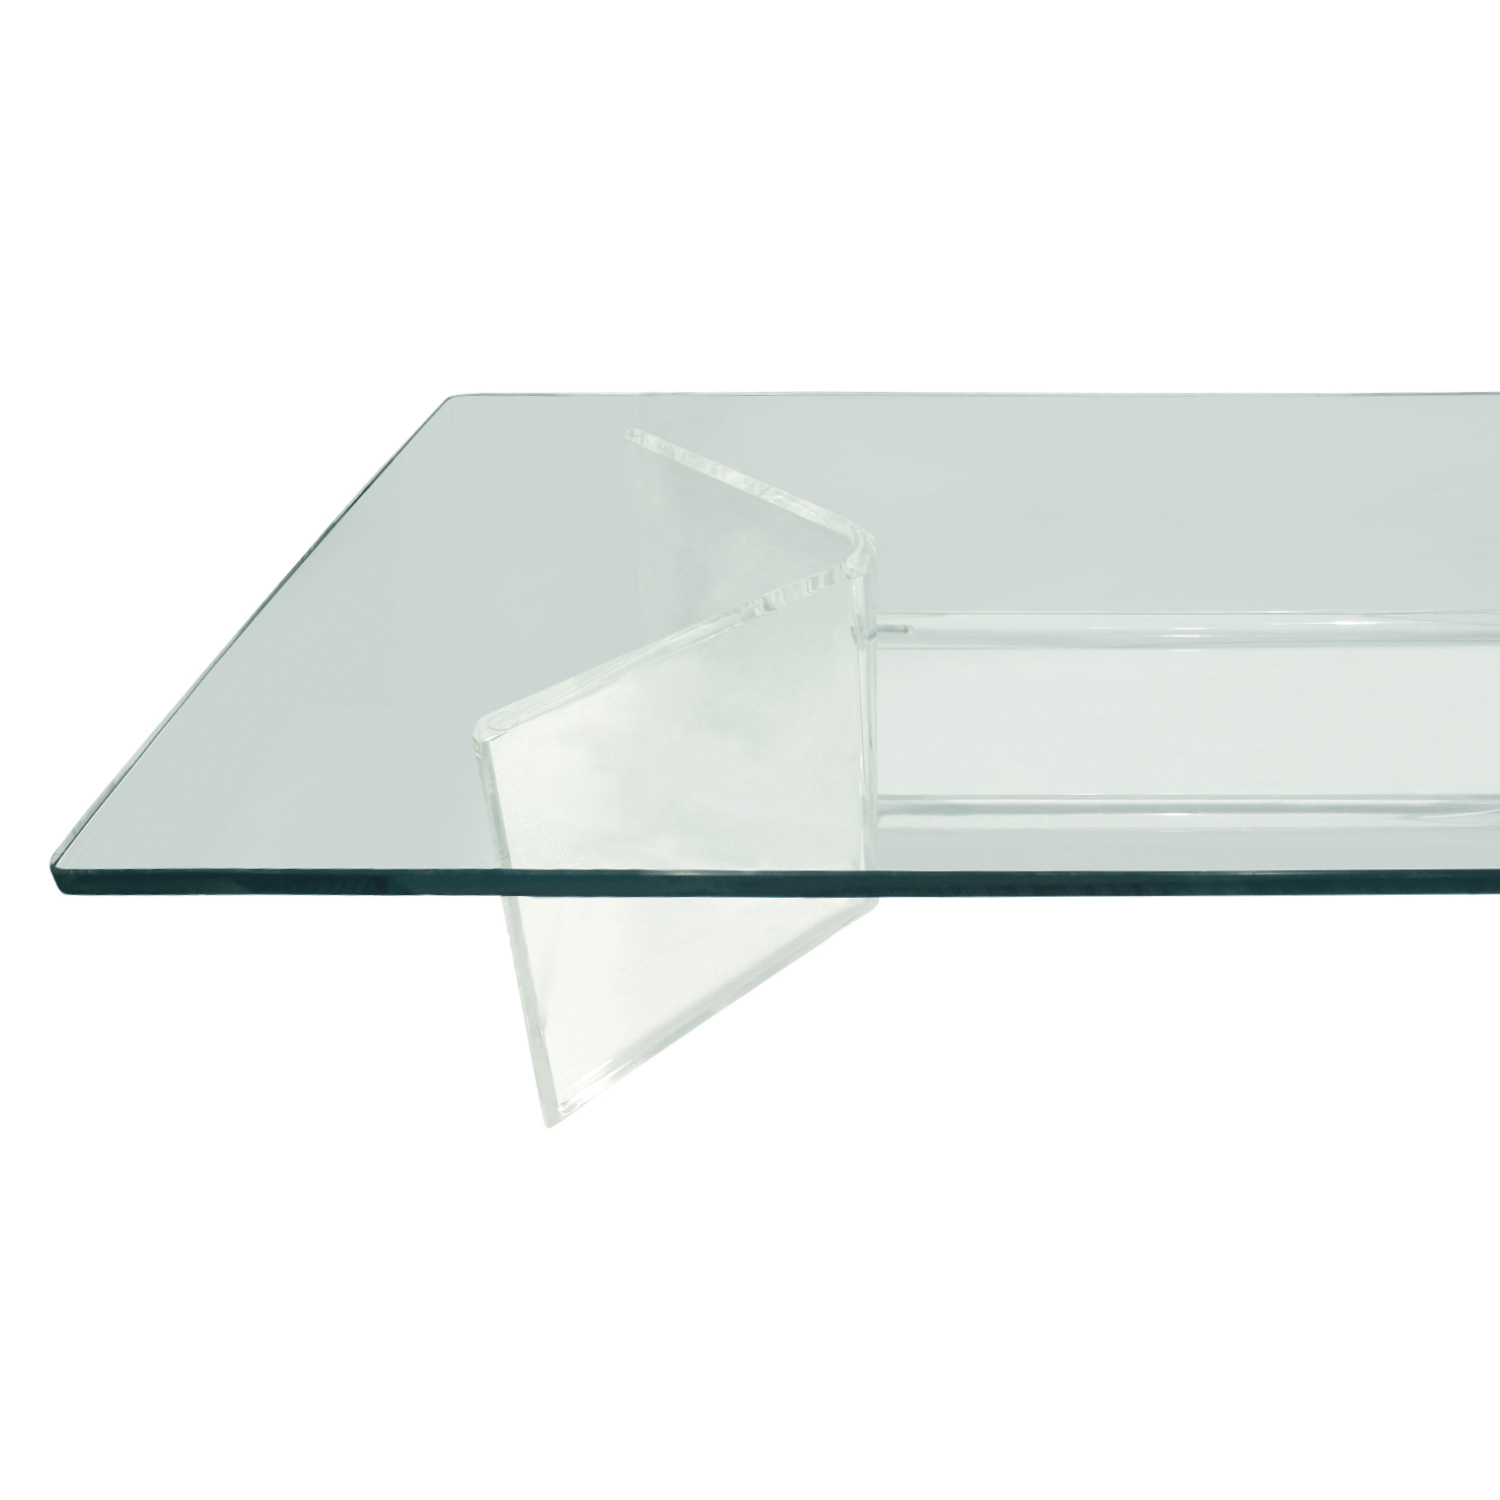 70s 65 rect lucite rod stretchers coffeetable417 dtl1.jpg